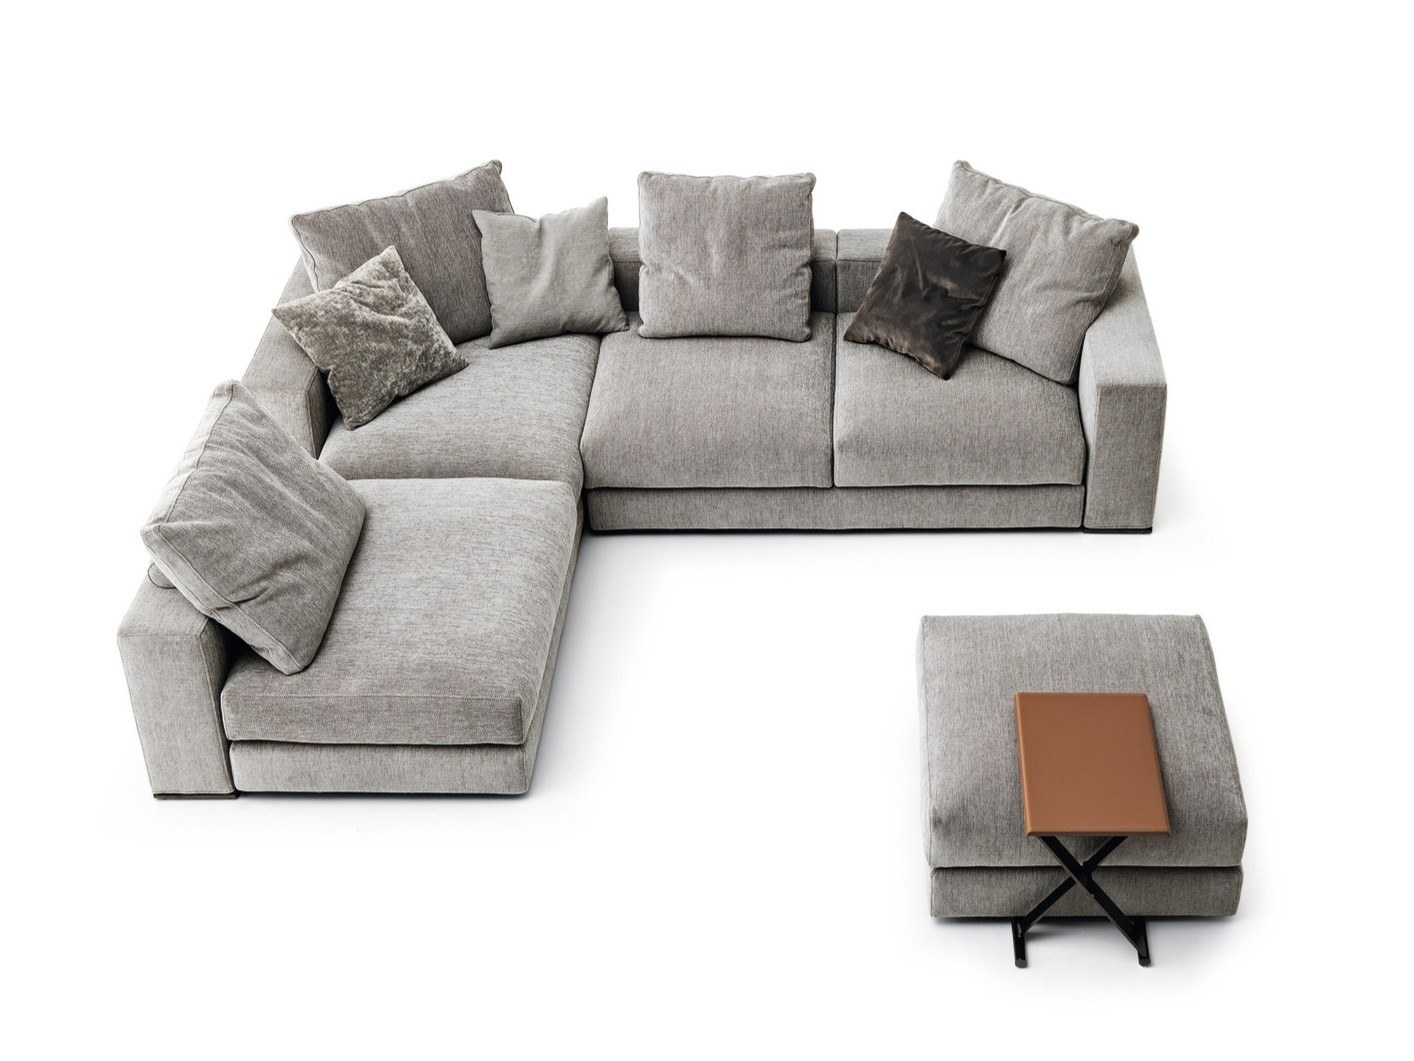 Ananta Class Sectional Sofa - Ananta Class is an informal, modular and versatile range that allows endless combinations of the independent backrests and bases available in 80, 120, 160, 200 and 240 cm lengths. The collection, whose name evokes the concept of infinity, is based on the idea of simple construction: free from constraints of the armrests and backrests, the seating can be arranged to suit individual needs. It is completed with a side table available in two sizes. The black chrome structure holds up a table top available in walnut veneer or regenerated leather. The line offers a new, democratic and modern way of relating objects to people's lifestyles. Fully removable covers. This item is available in various sizes and combinations. Please enquire for more information and prices.  Ananta Class Coffee Tables are available to purchase.  Materials Structure in wood padded with variable-density polyurethane foam, covered with velfodera on a resin-coated backing 200gr/sqm. The seat is sprung with elastic straps reinforced with polypropylene. The bases have feet in ABS while the feet of the backs are in black nickel finish. The back cushions are padded with washed and sterilize goose down and 100% polyester fiber divided into sections. Ananta Class proposes two kinds of seats: feather and polyurethane foam versions. Feather version The seat cushions are filled with washed and sterilized goose feather divided into sections and covered with white 100% cotton fabric with a variable-density foam core. Foam version The seat cushions are padded with variable-density polyurethane foam, covered with fine velvet coupled with dacron 380gr/sqm. | Matter of Stuff